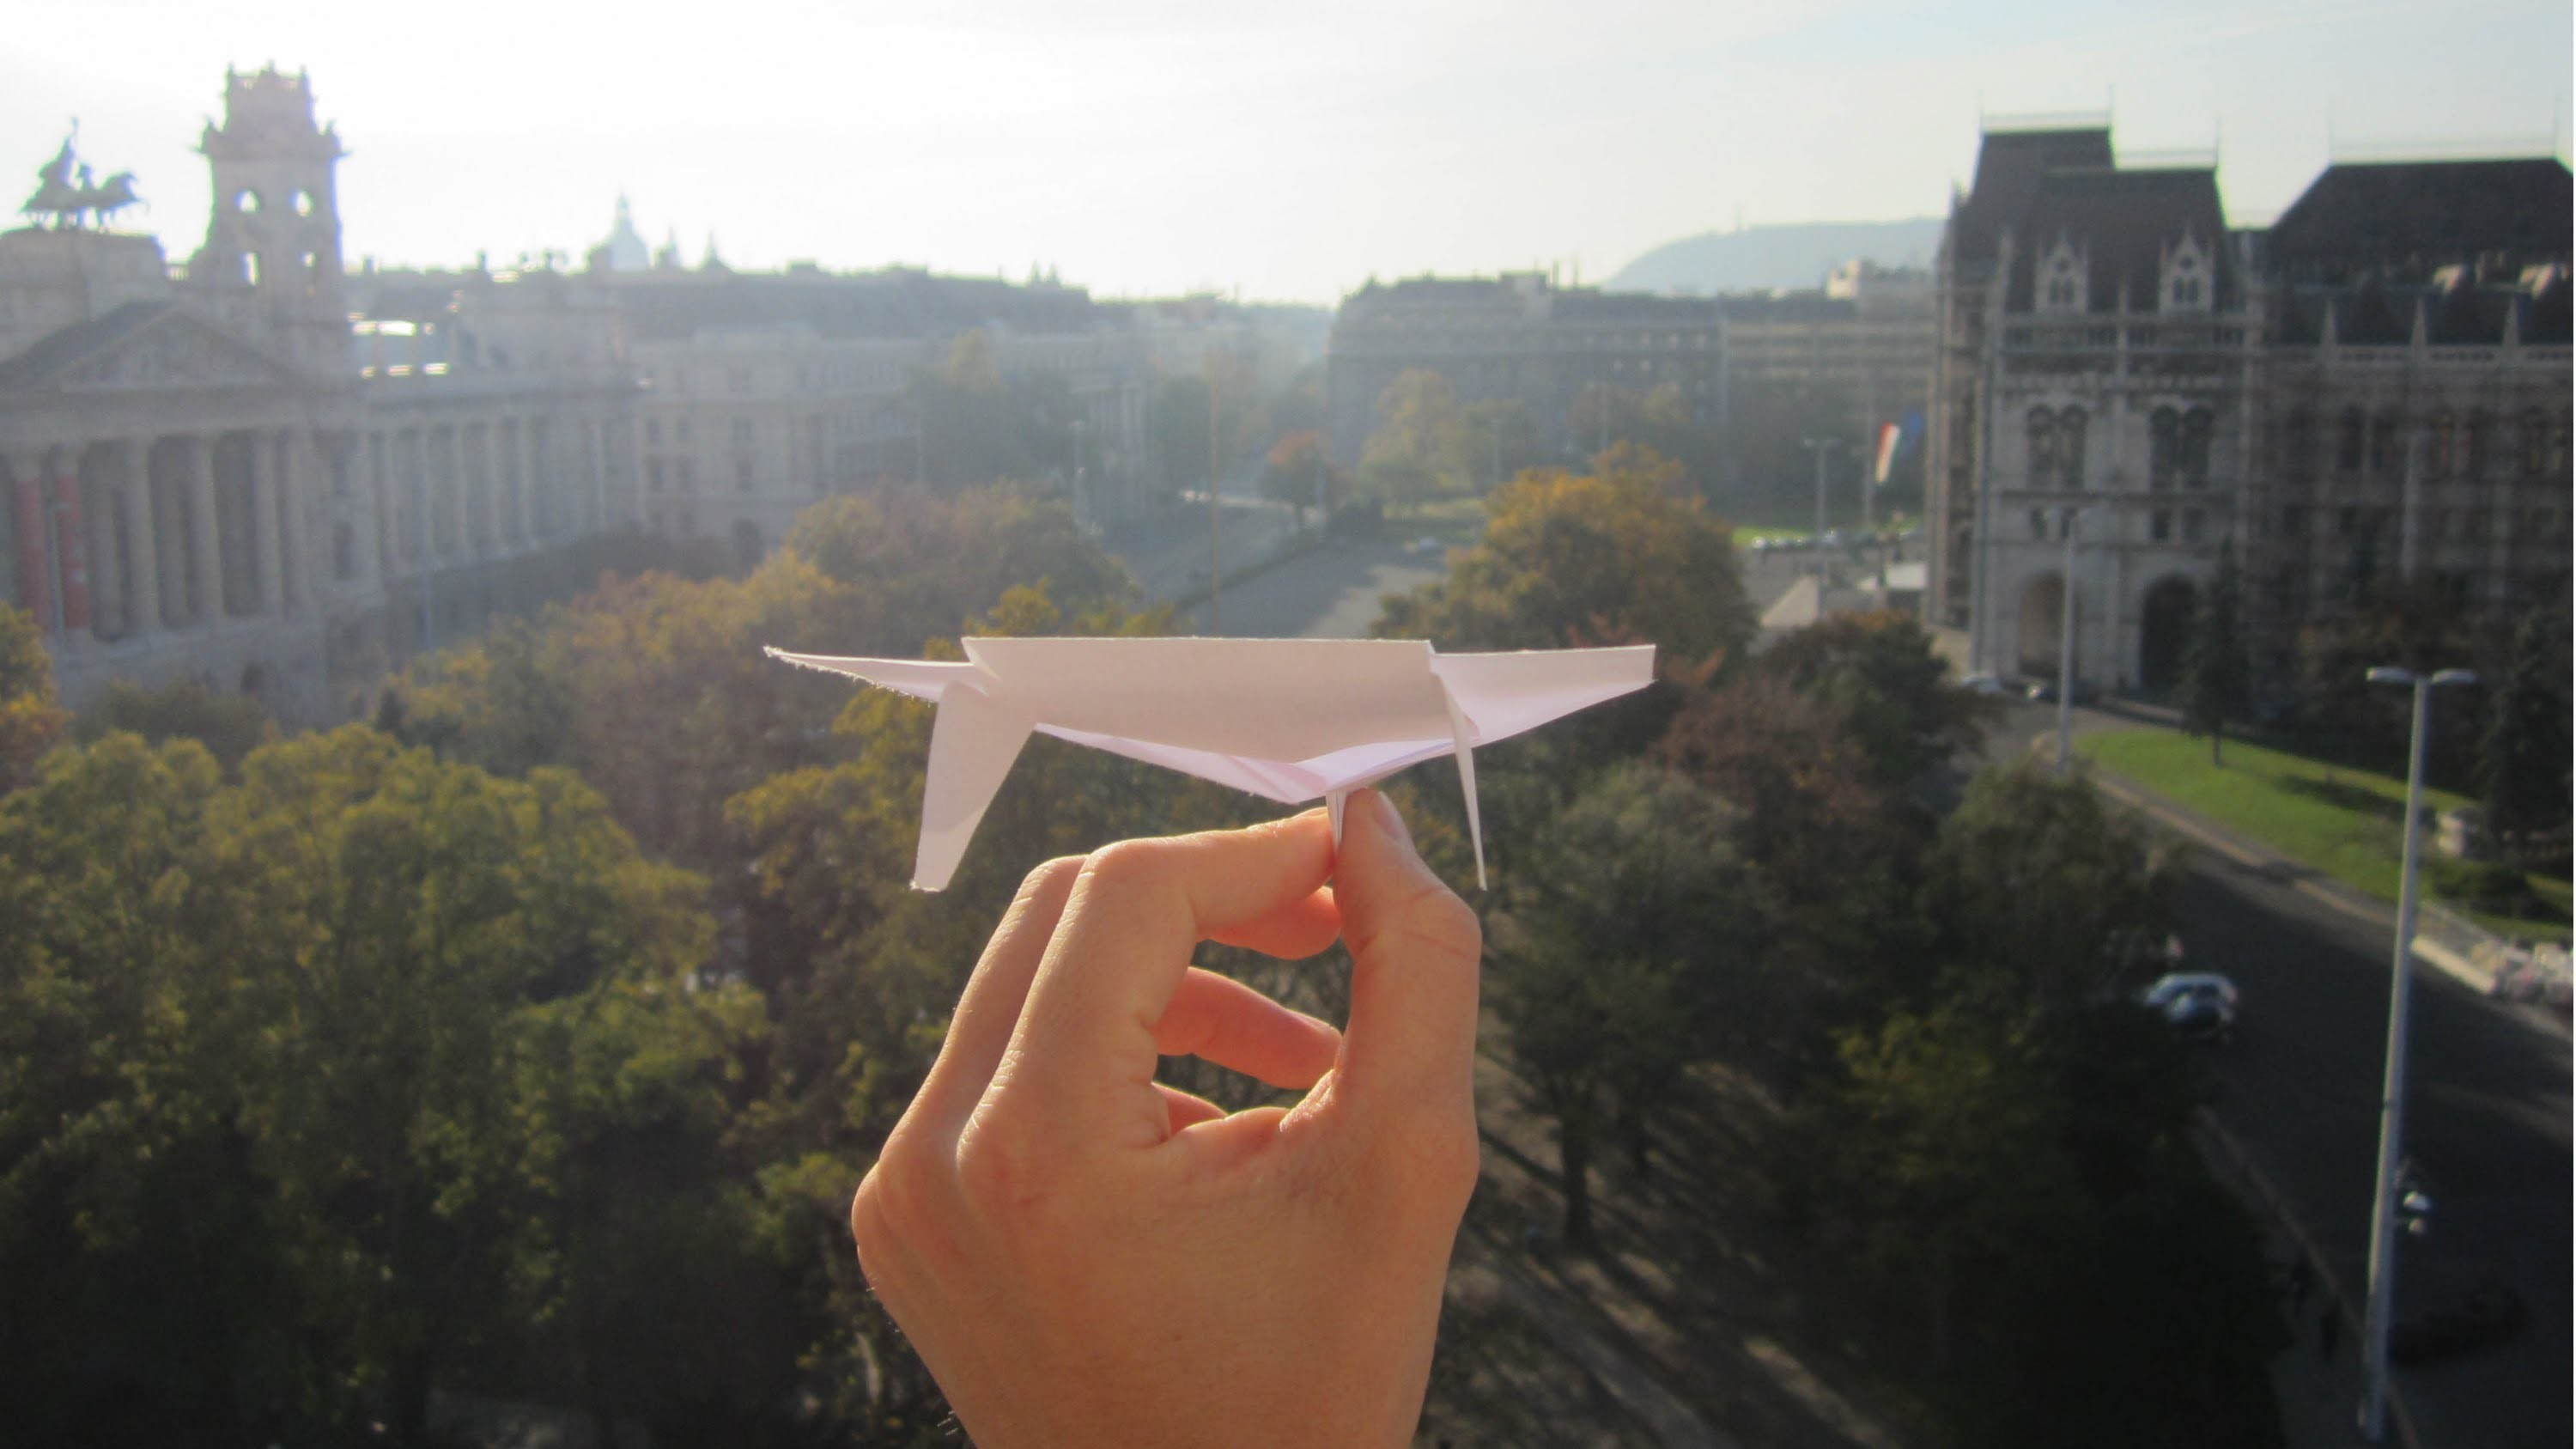 The Ultimate Paper Airplane Glider In Action (+ tutorial) - My Best Ever Paper Plane